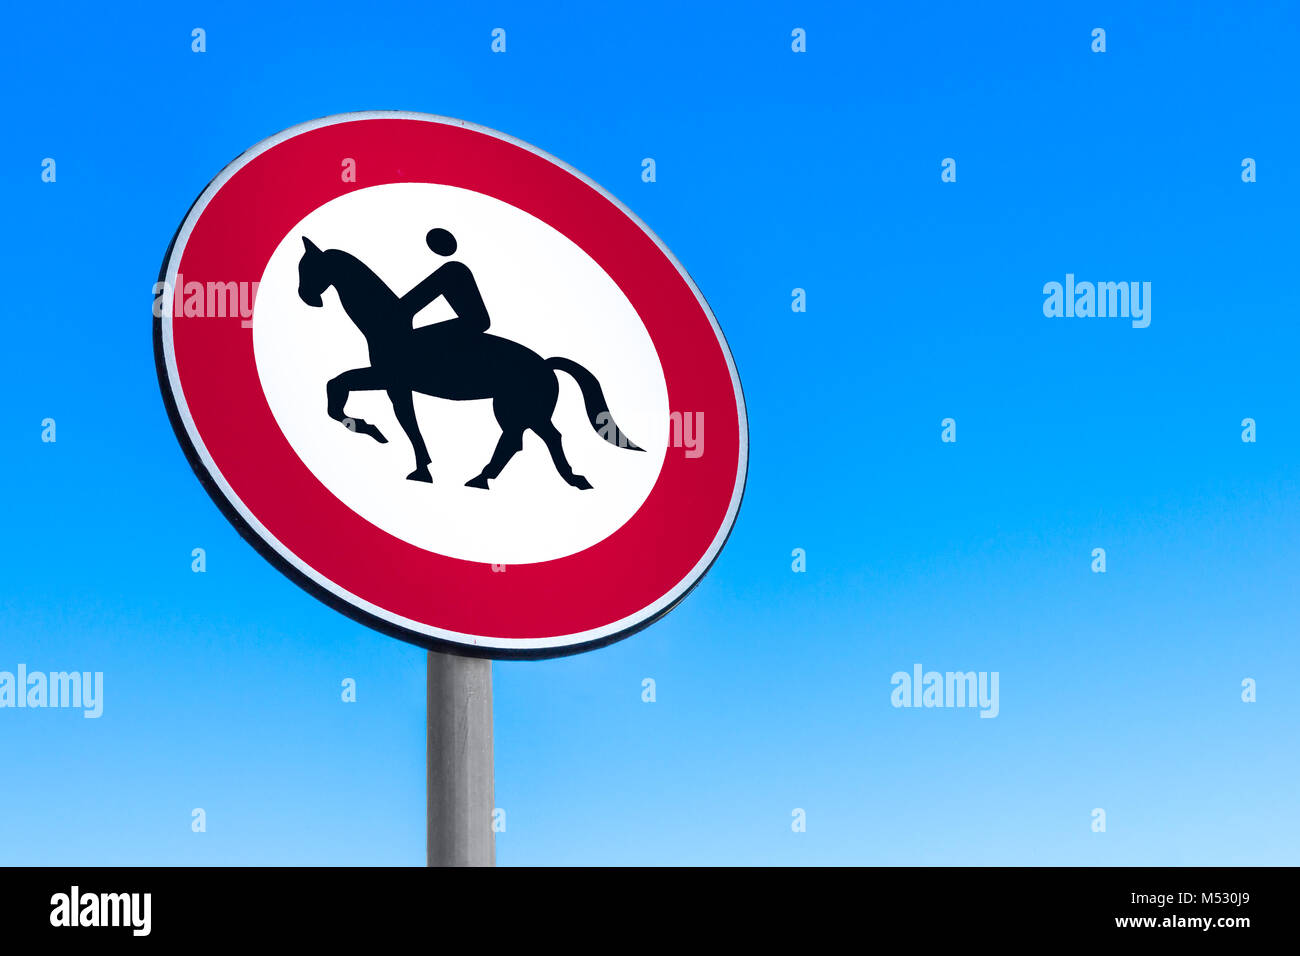 Road sign to prohibit passage with horse. - Stock Image